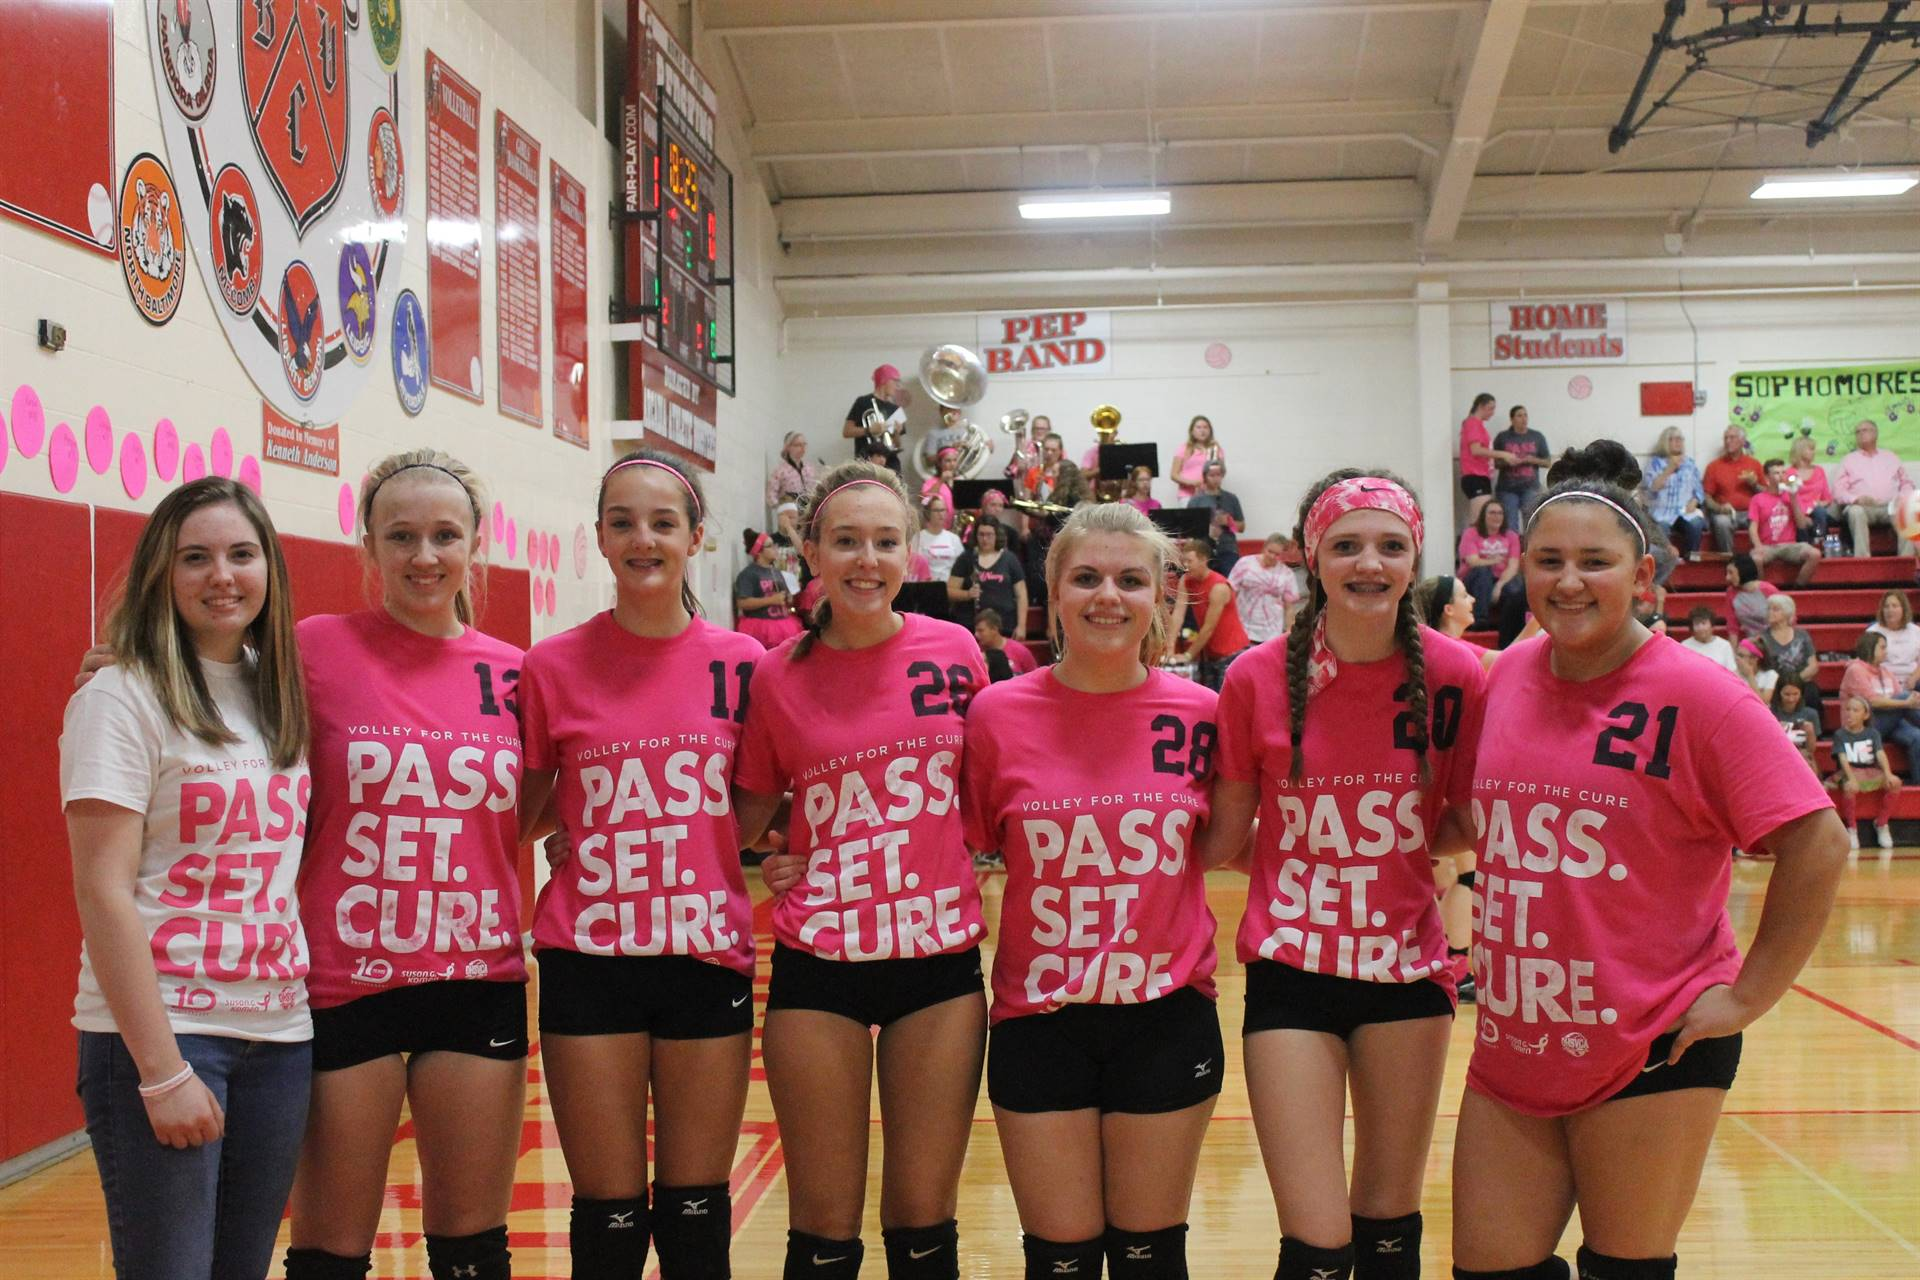 JV Team - Volley for the Cure